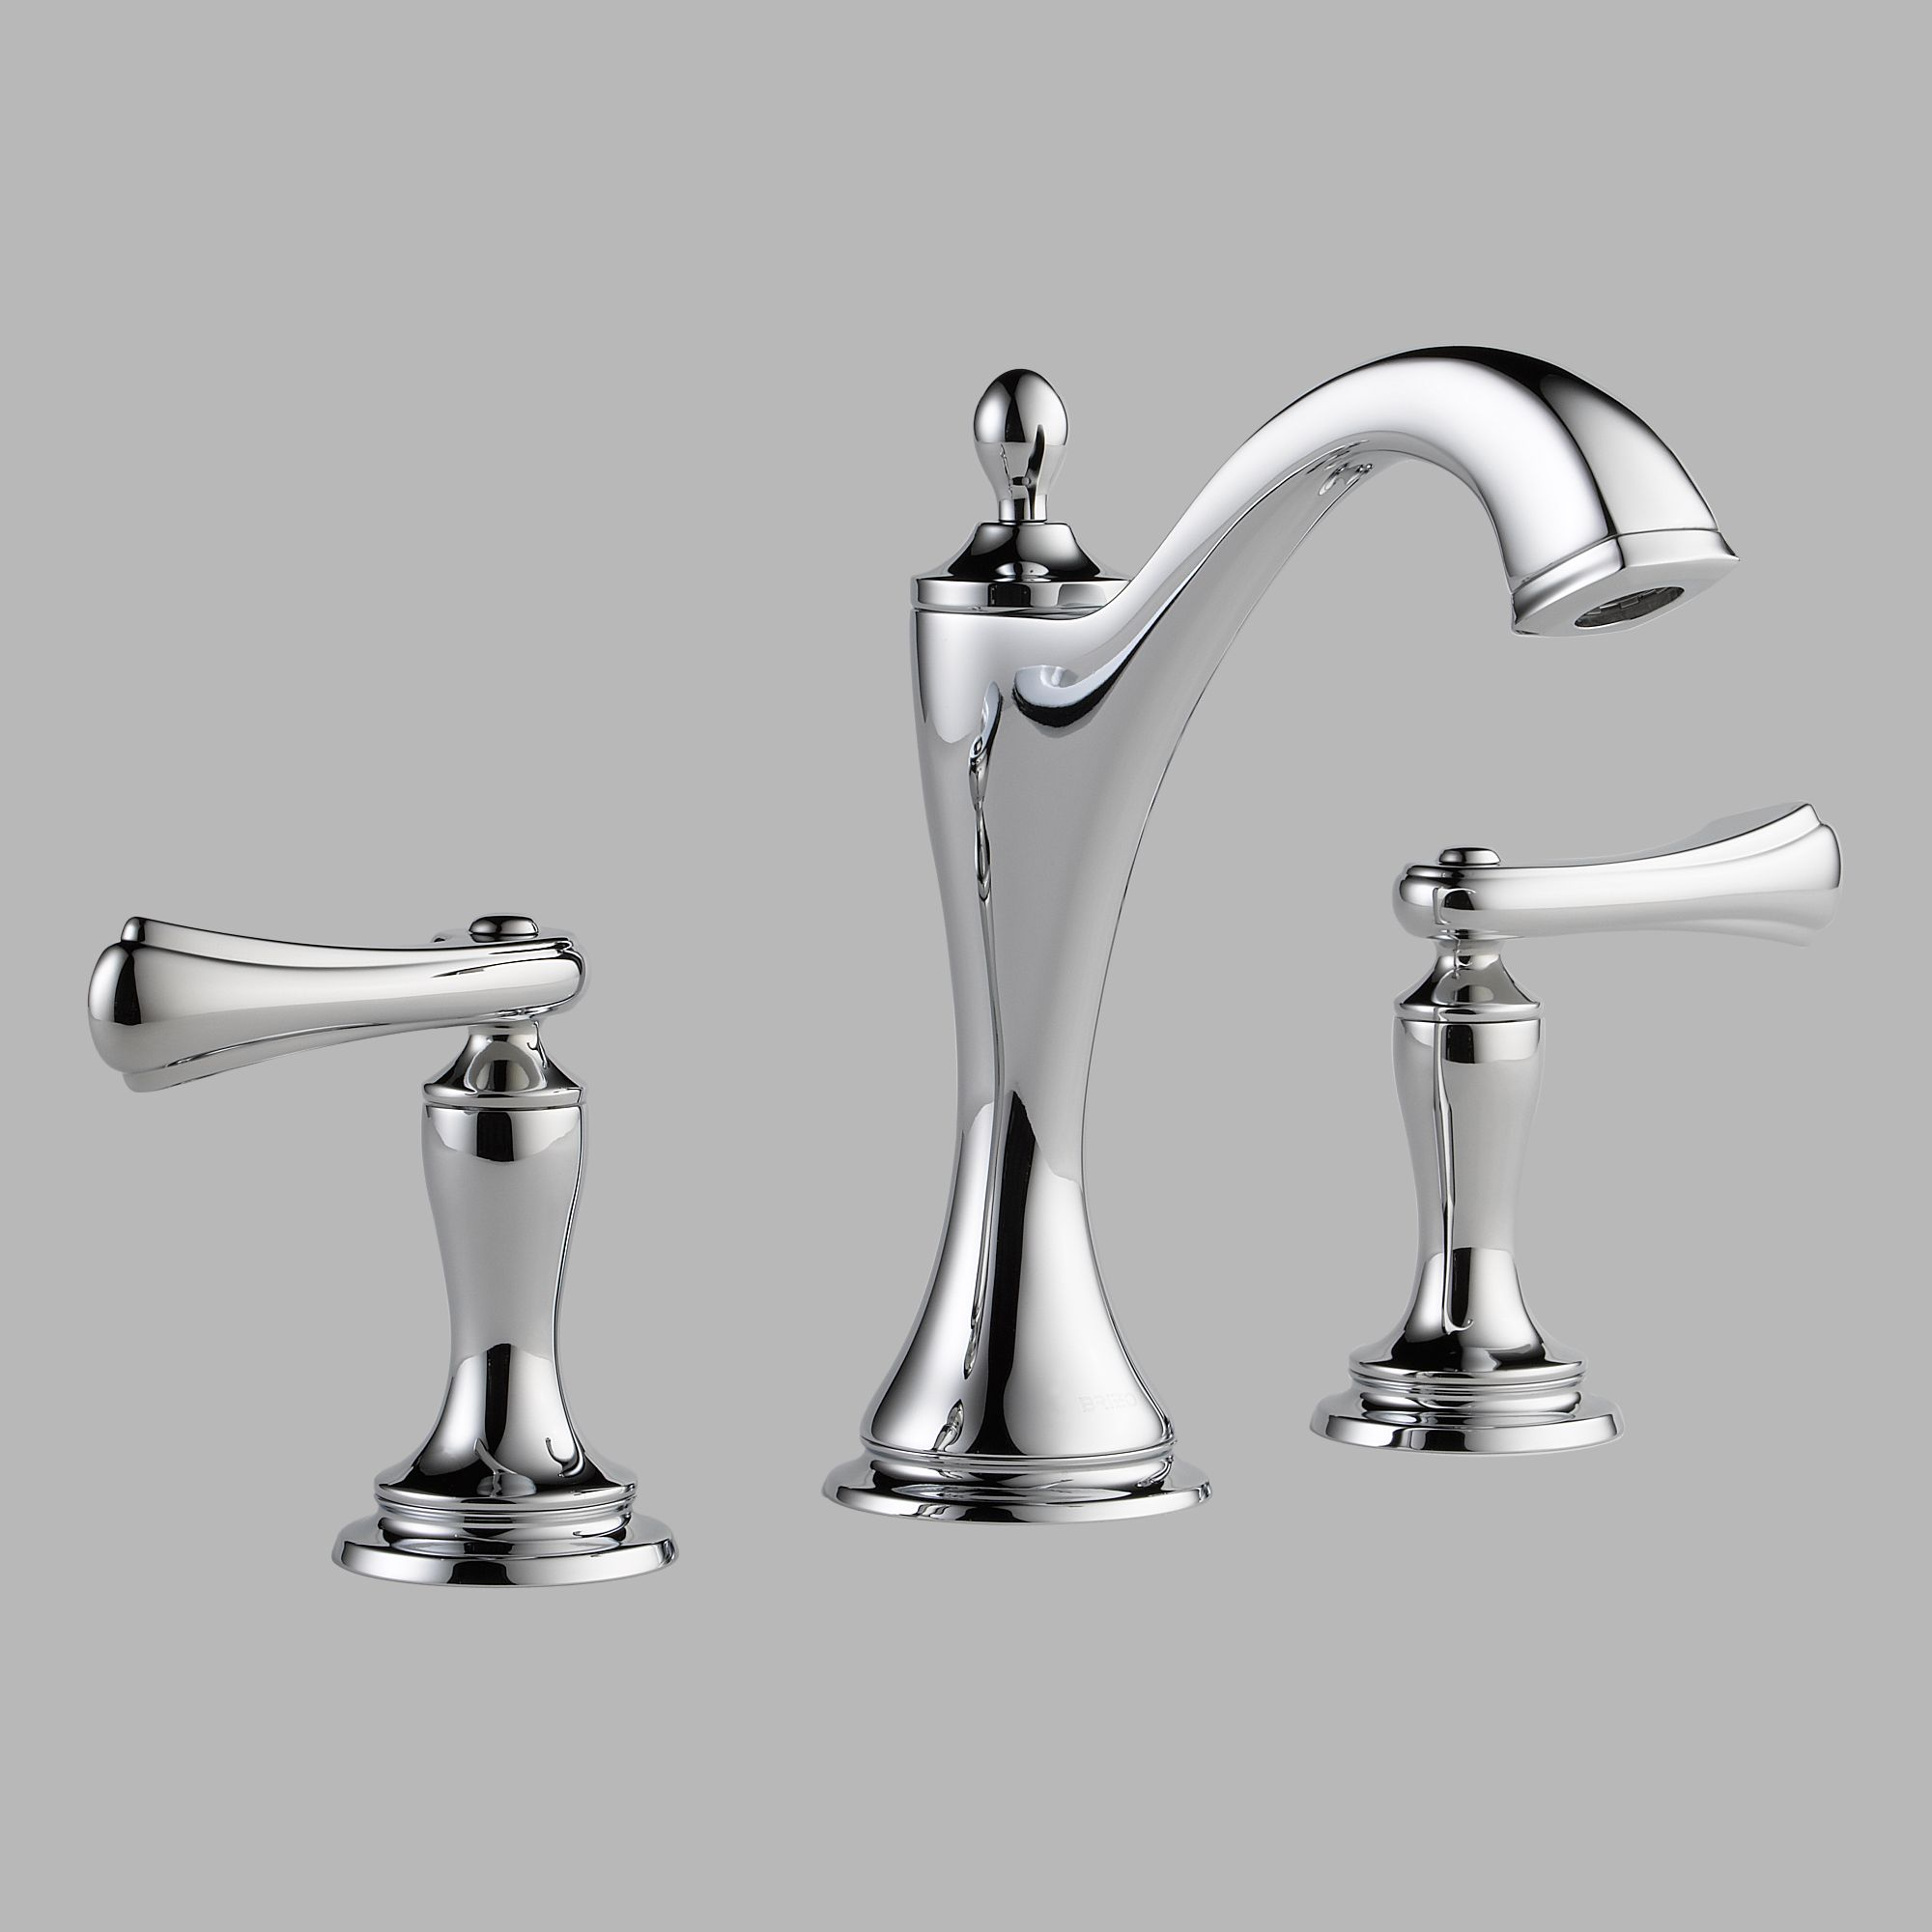 Charlotte : LUX HOME || Discount Plumbing and Hardware || Kitchen ...